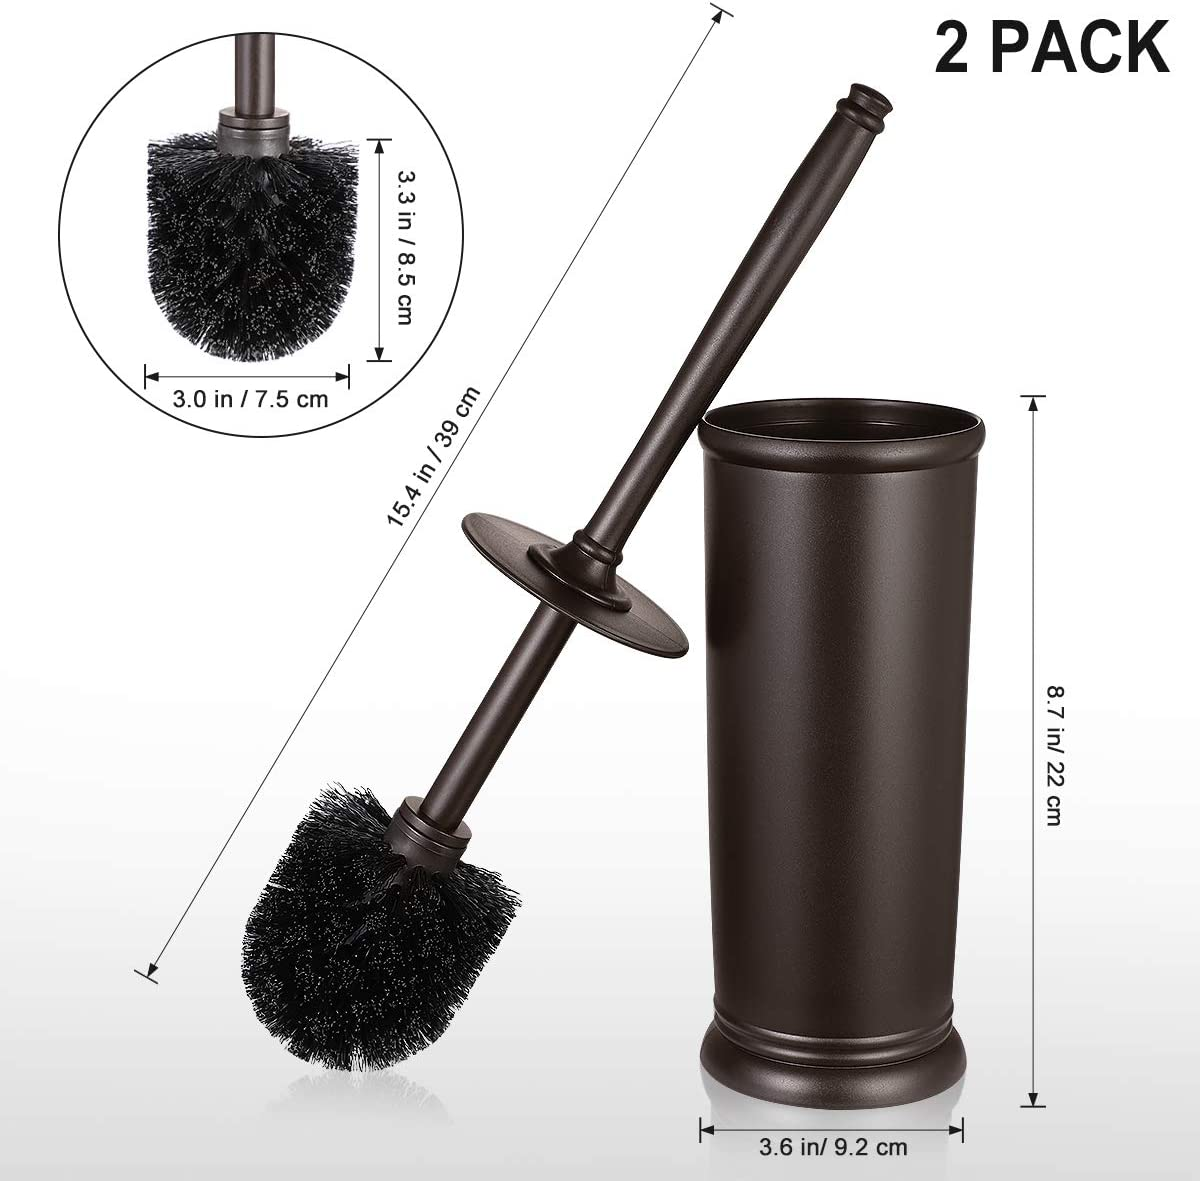 Toilet Brush and Holder, Deep Cleaning Toilet Bowl Brush Set Ergonomic 2 Pack - Bronze